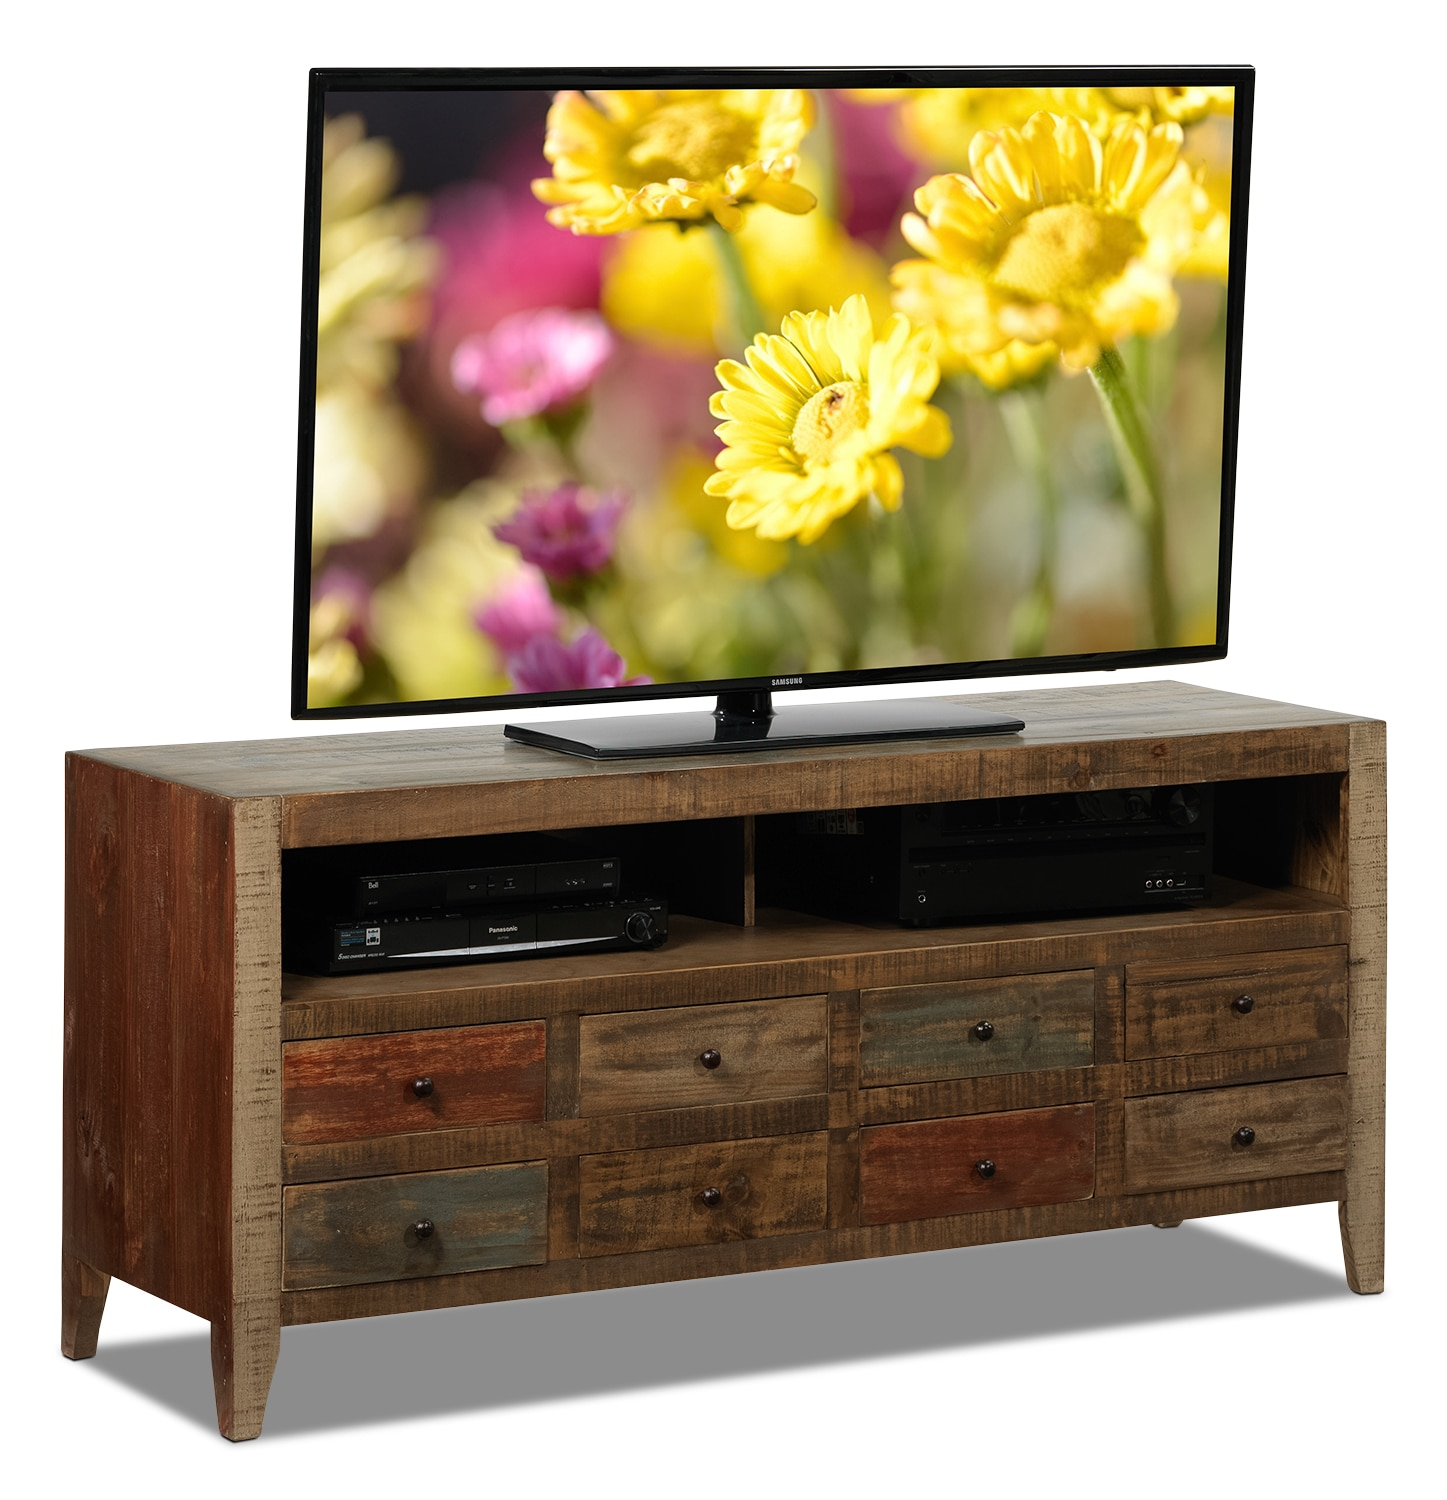 Auckland TV Stand - Rustic Brown